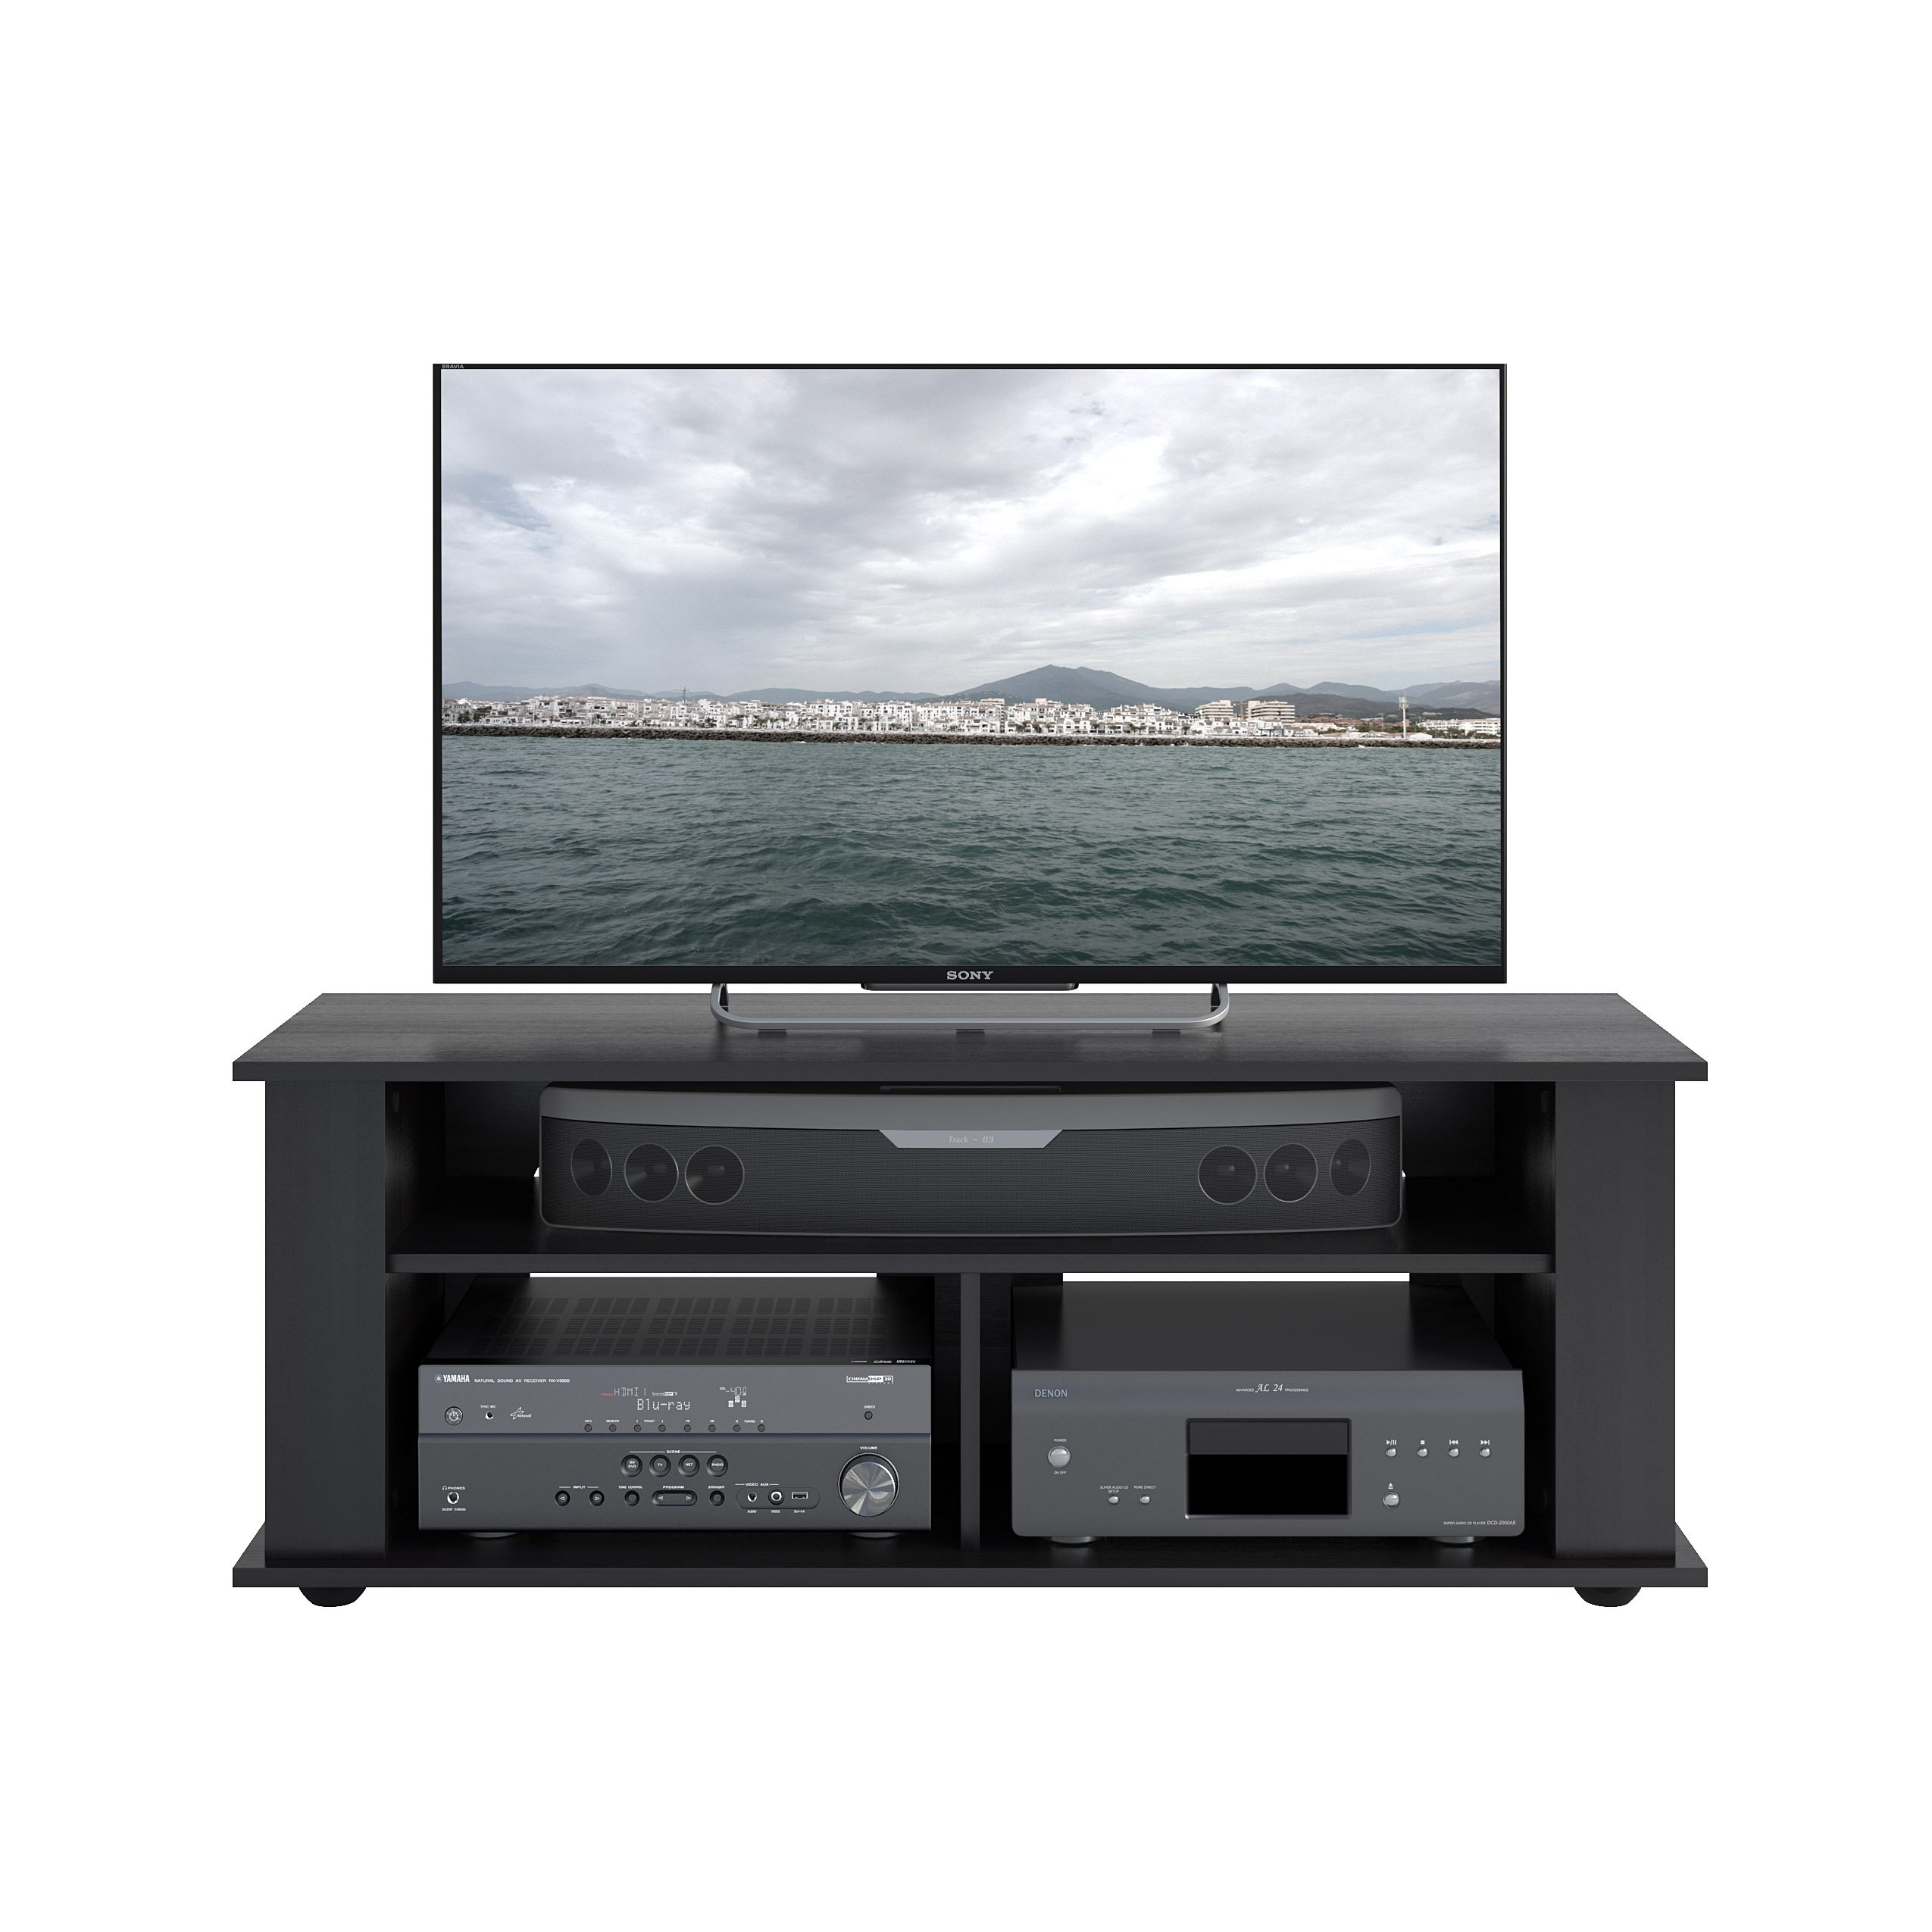 CorLiving TBF-604-B Bakersfield Ravenwood TV/Component Stand, Black by CorLiving (Image #2)